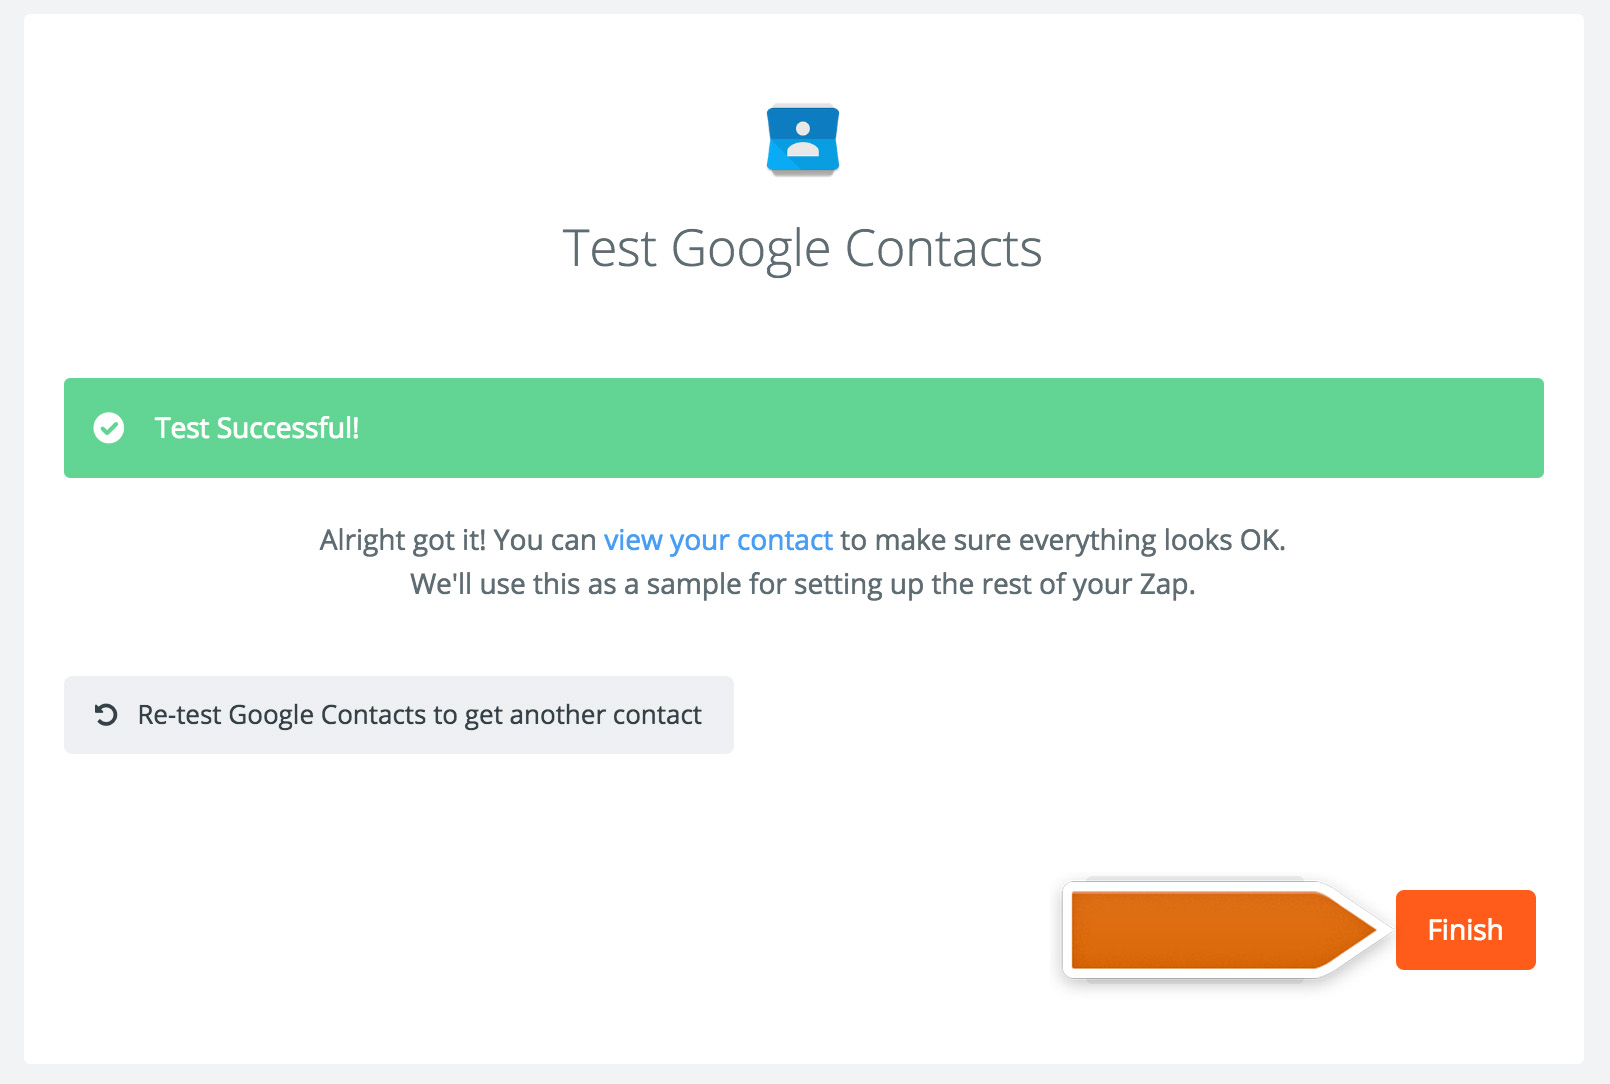 Finalizing the Google COntacts integration